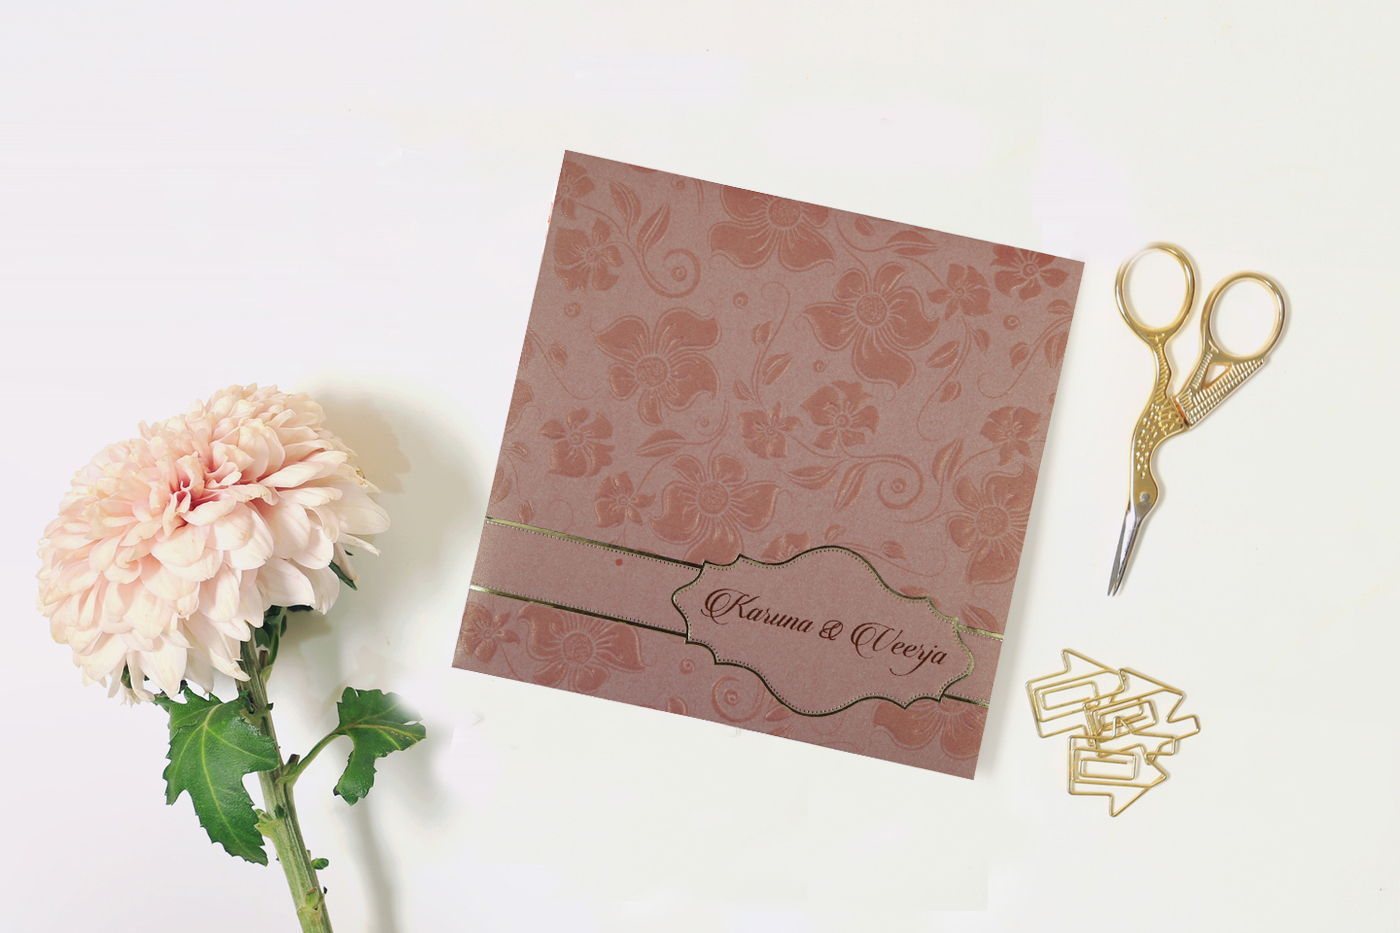 Style Your Wedding With Floral Wedding Invitation Cards - A2zweddingcards